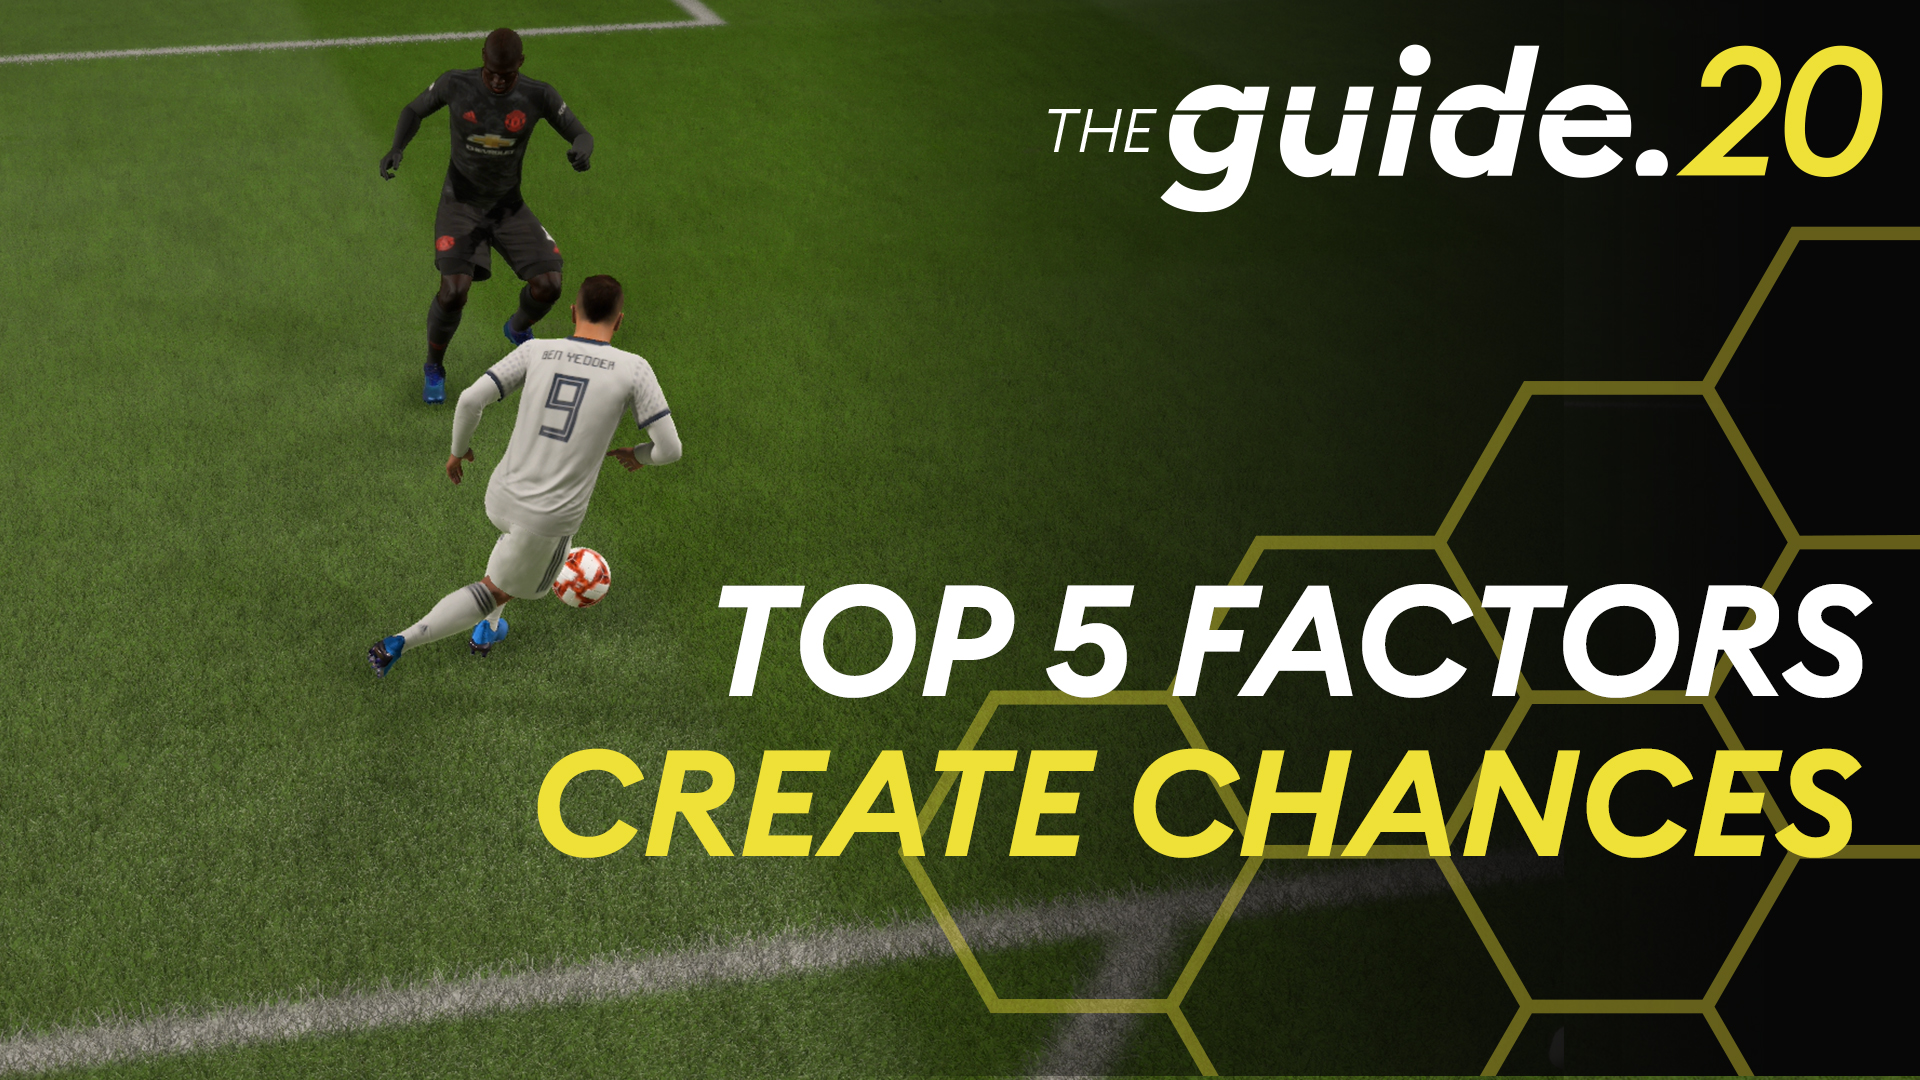 FIFA 20 – Top 5 factors for chance creation